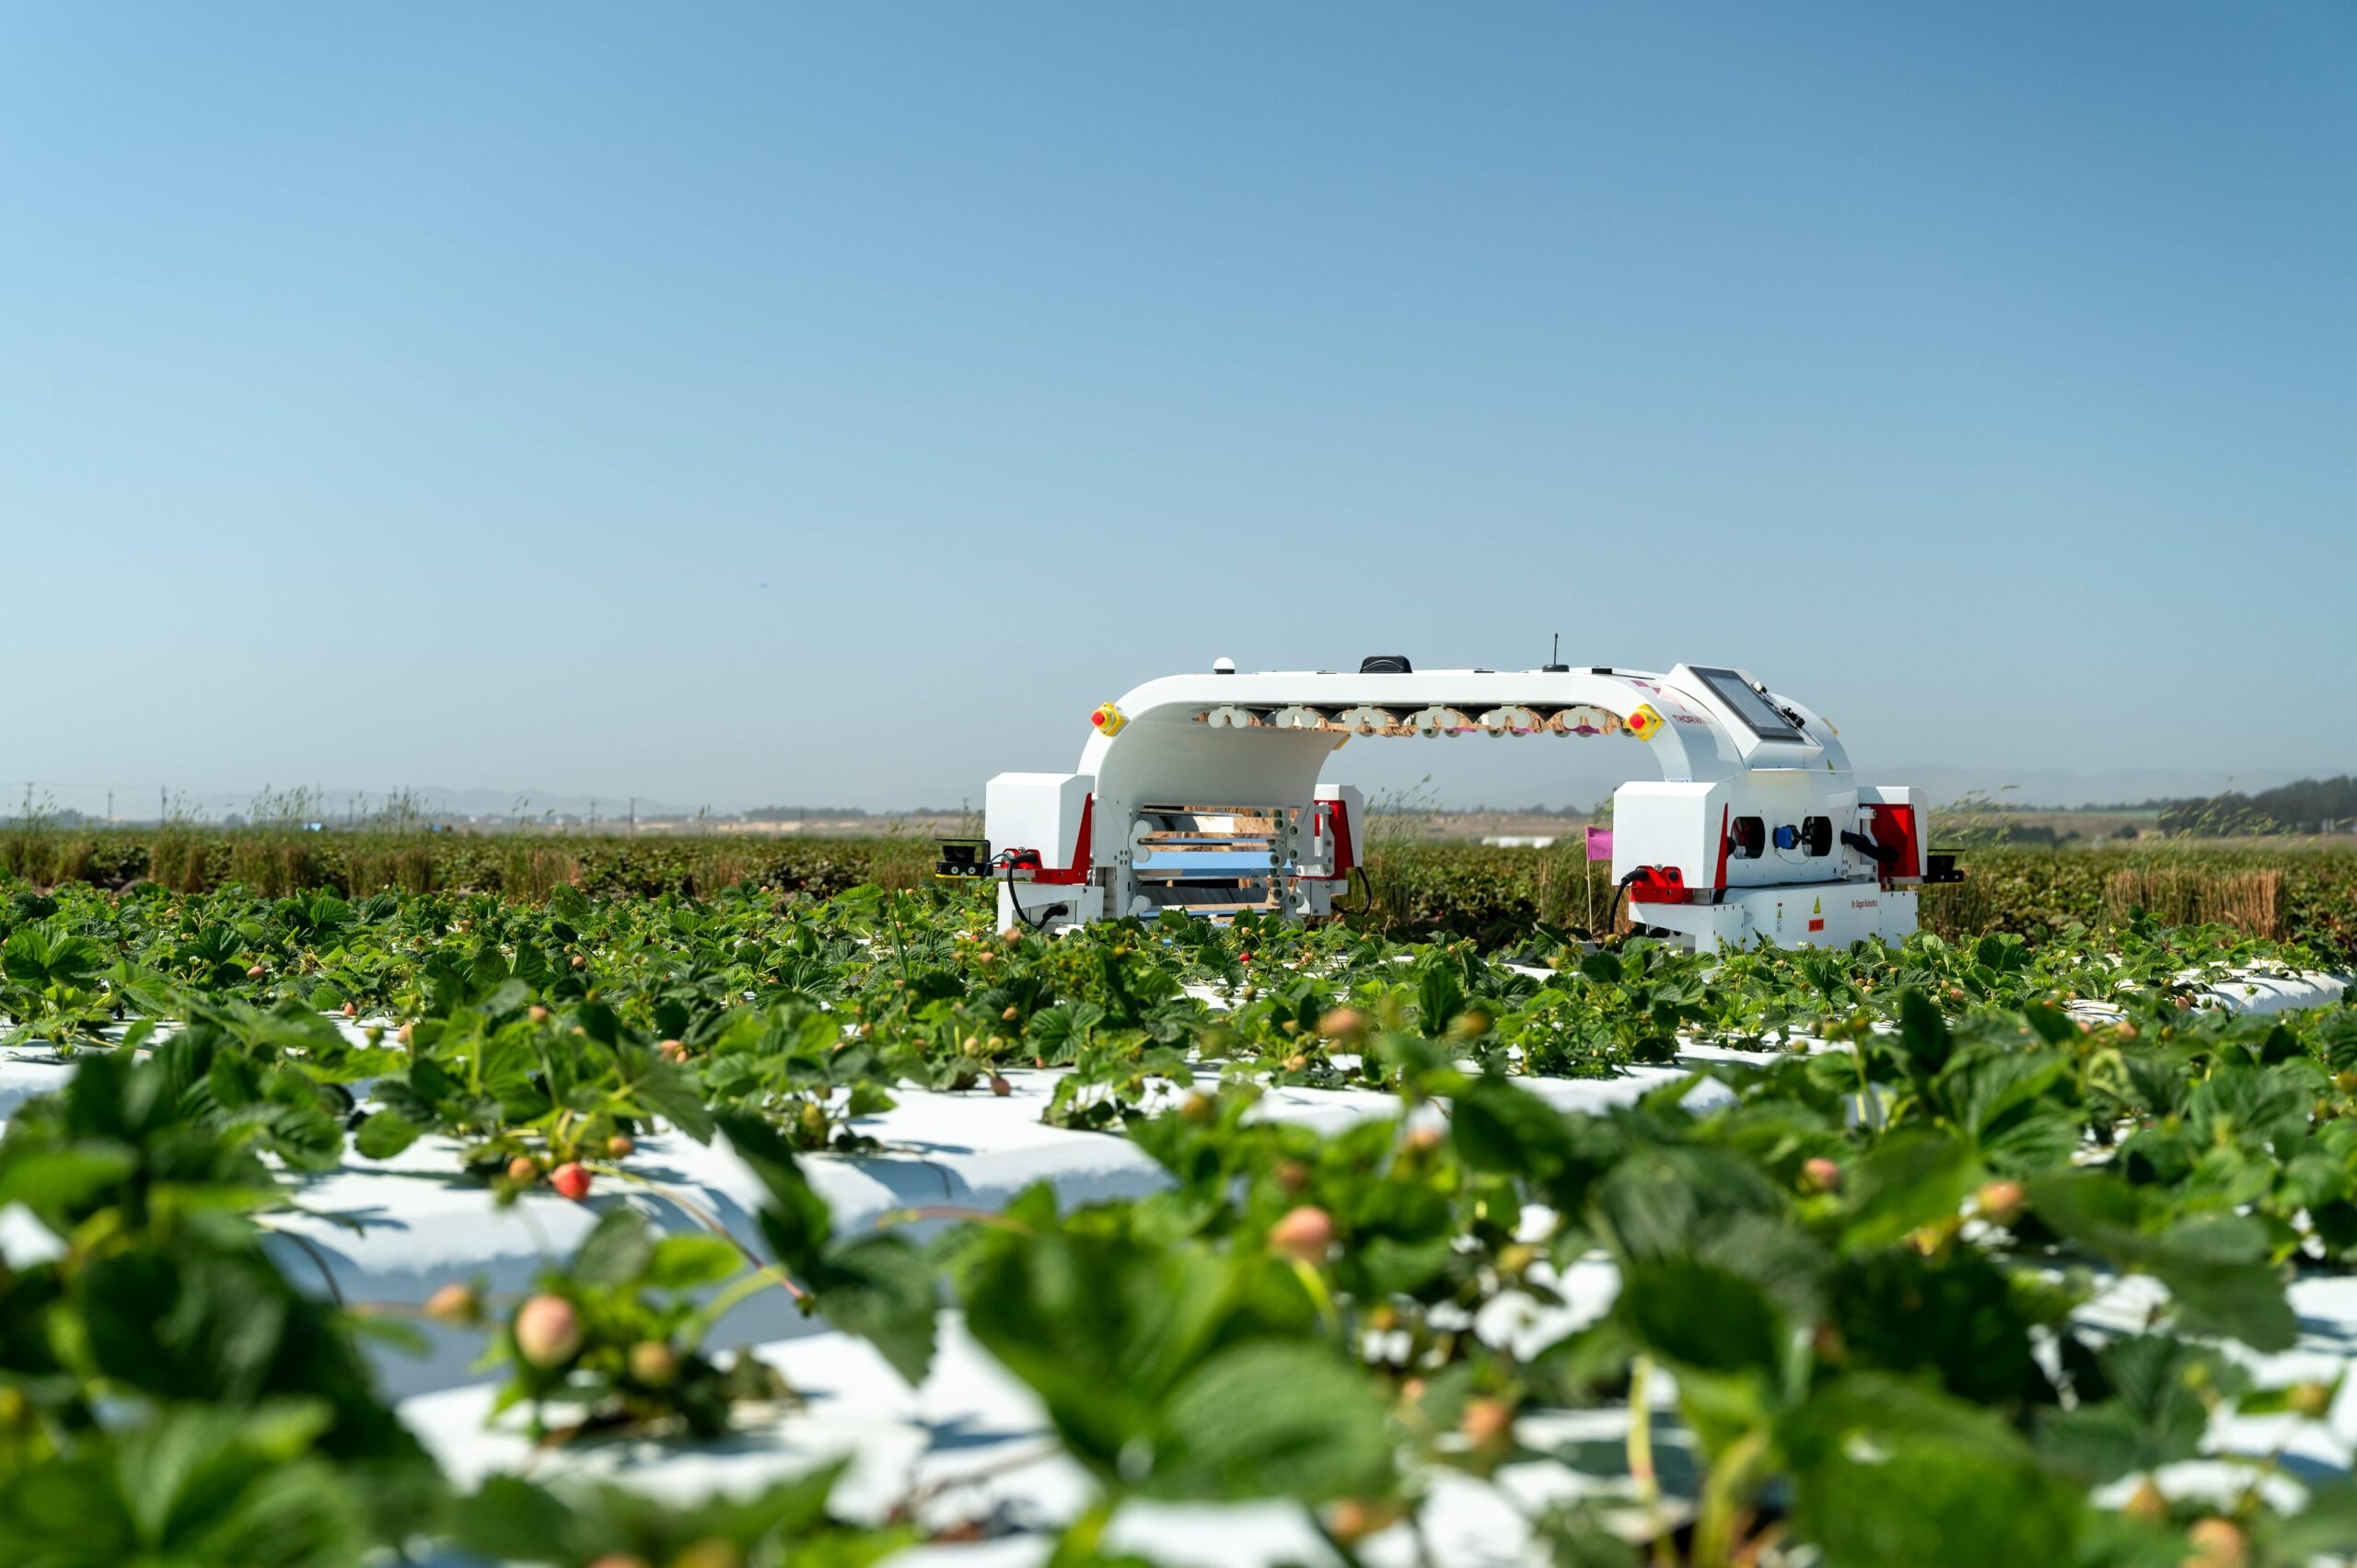 Thorvald in open strawberry fields